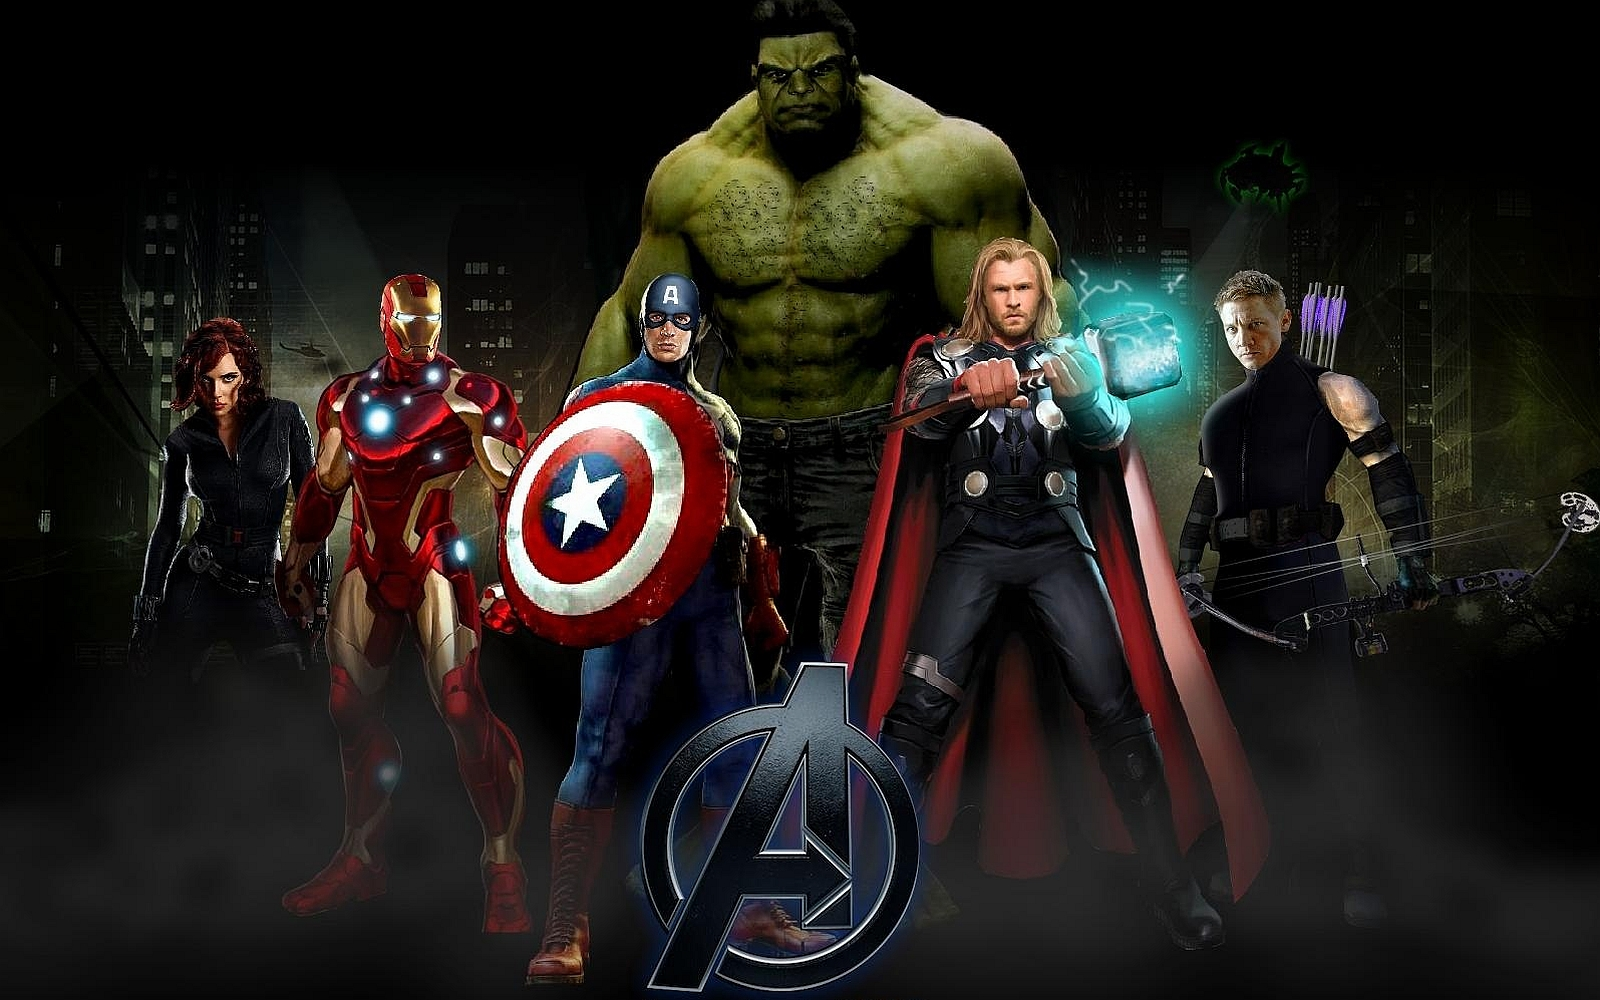 The Avengers Wallpaper and Background Image | 1600x1000 ...